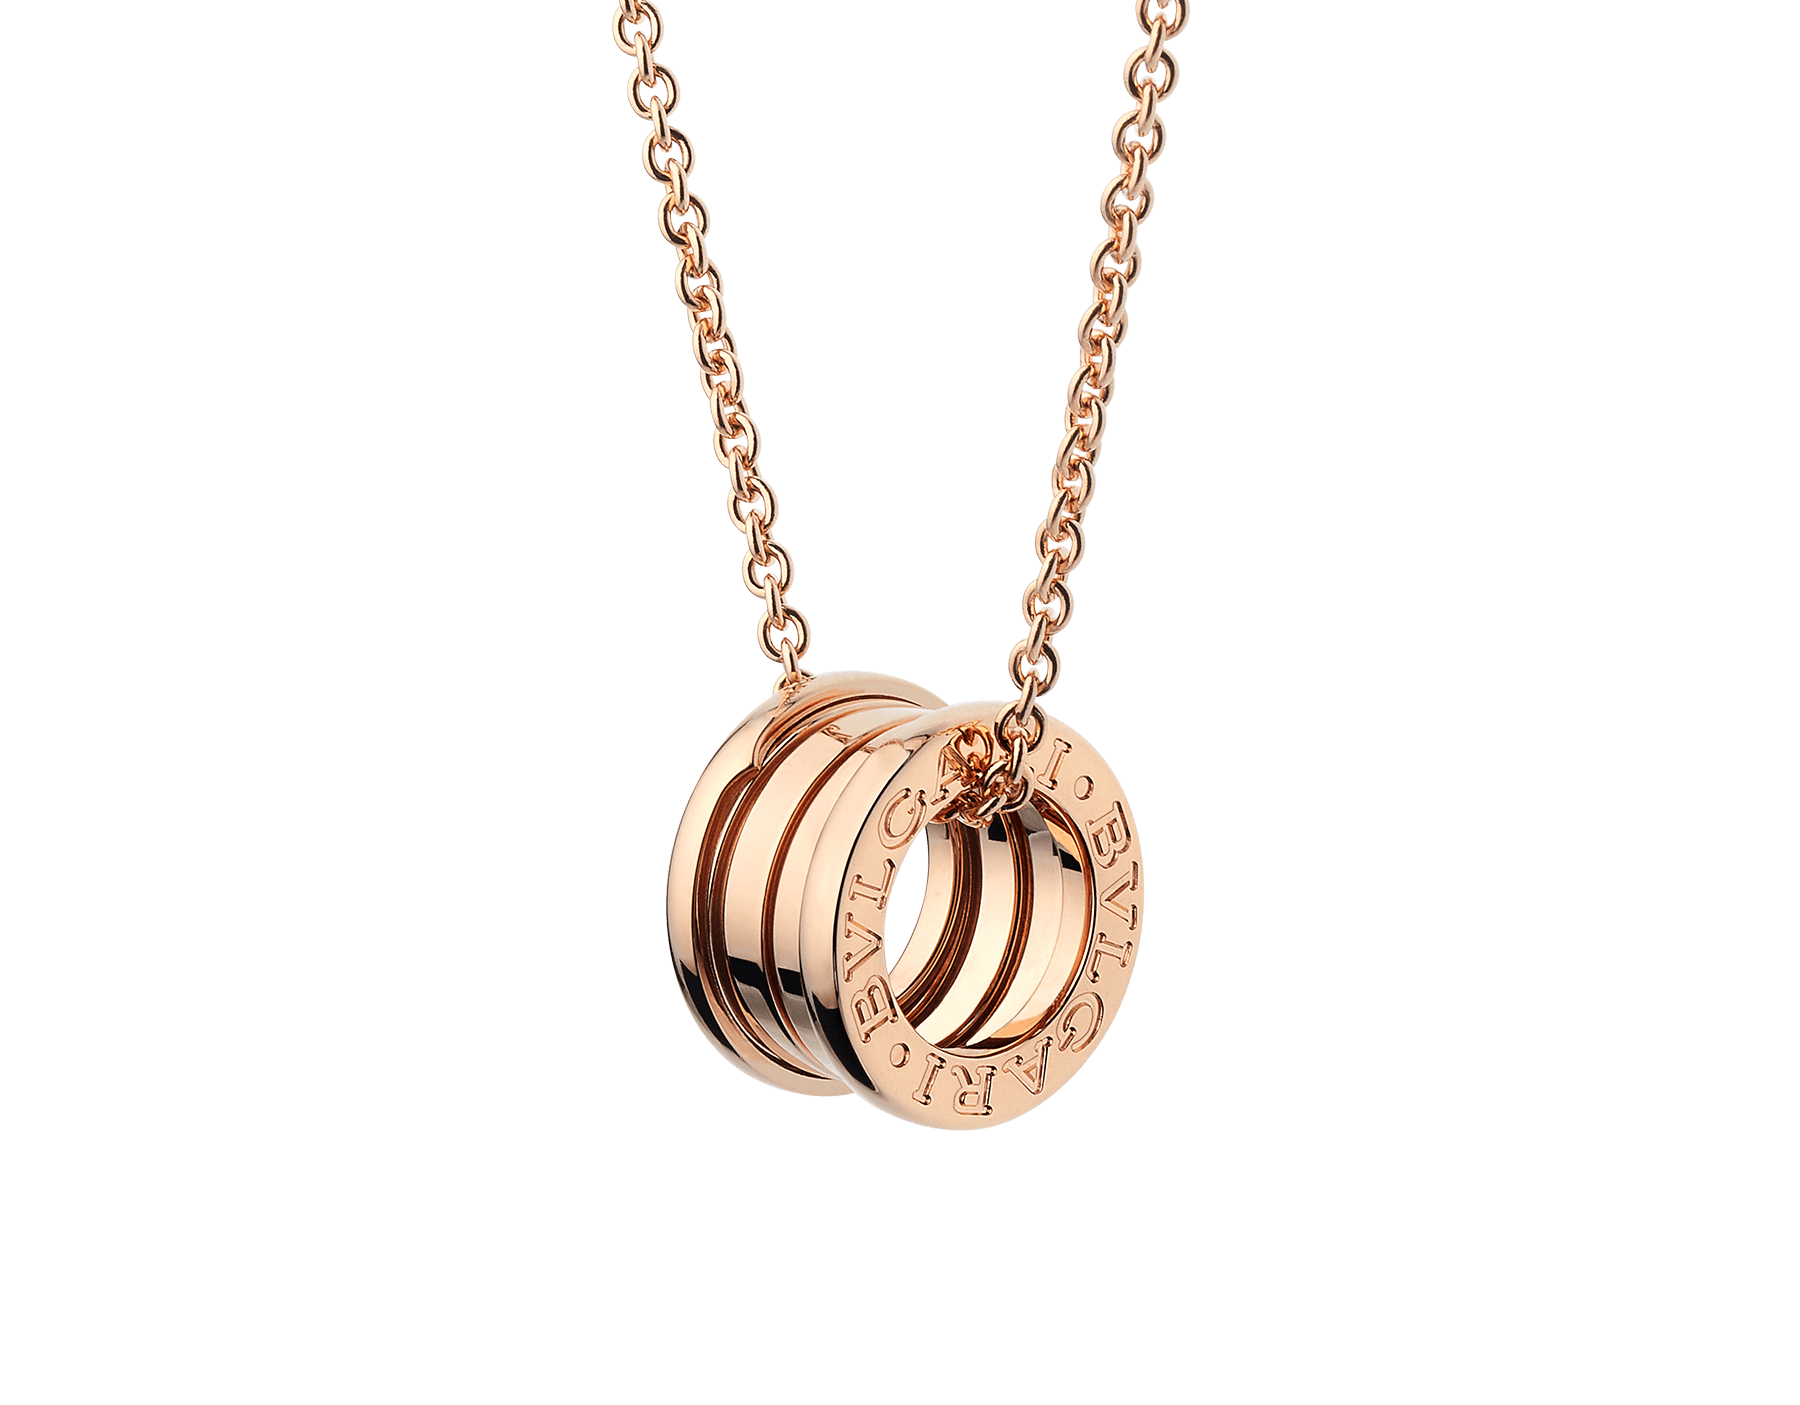 B.zero1 necklace with chain and small round pendant in 18kt rose gold. 335924 image 1